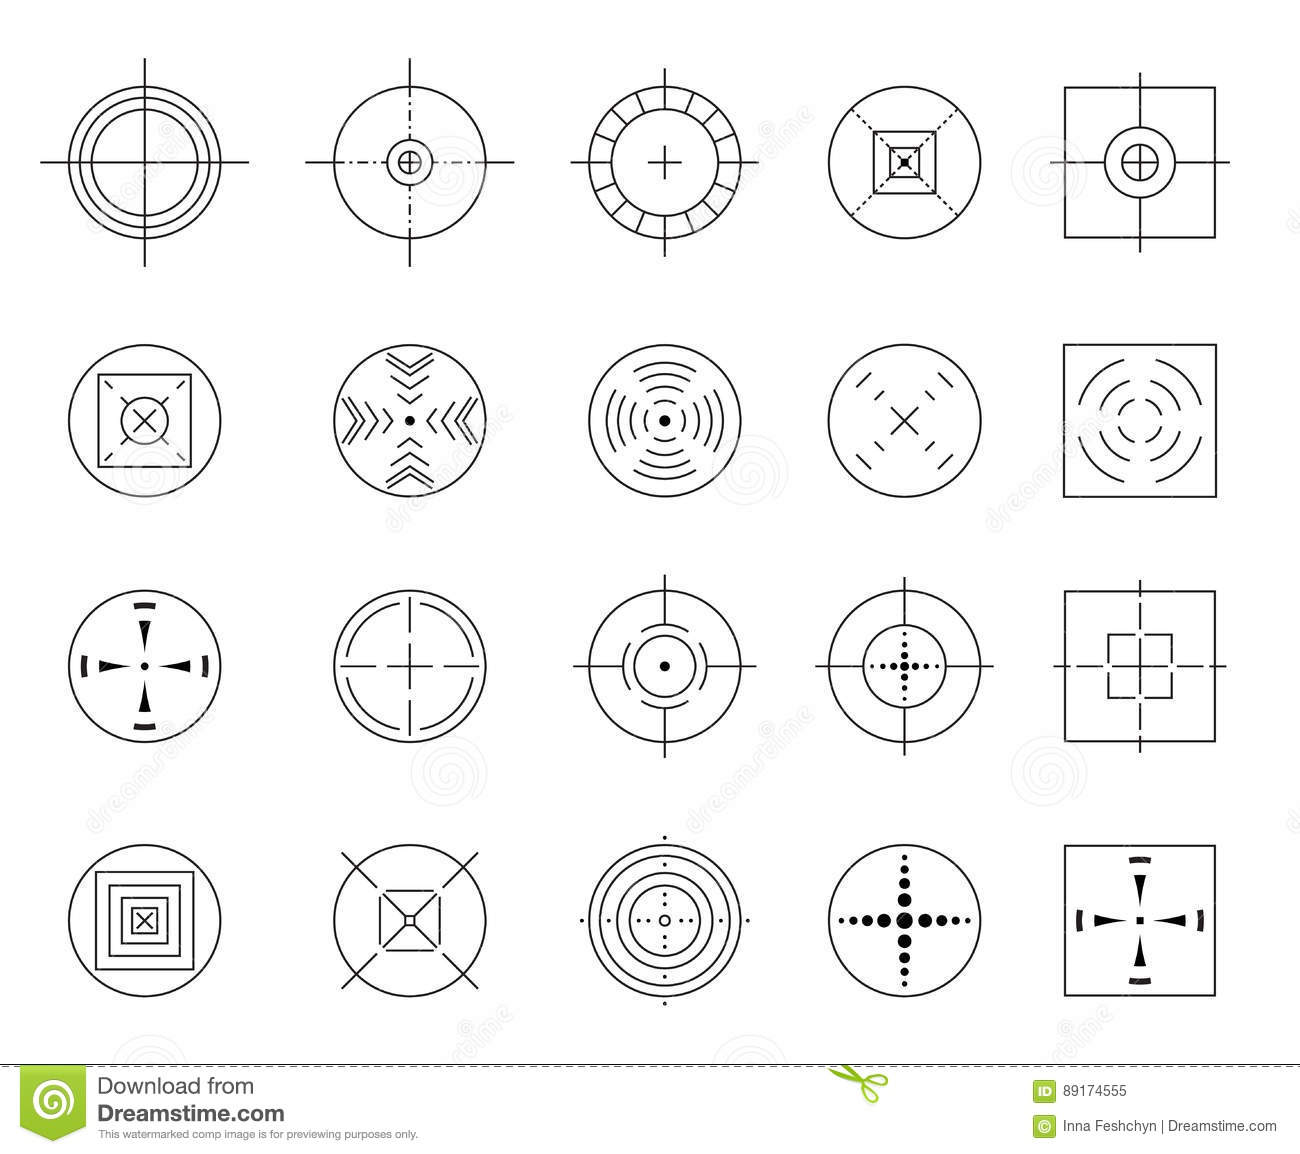 3eb19a17fc74 Collection of vector flat simple targets isolated on white background.  Different crosshair icons. Aims